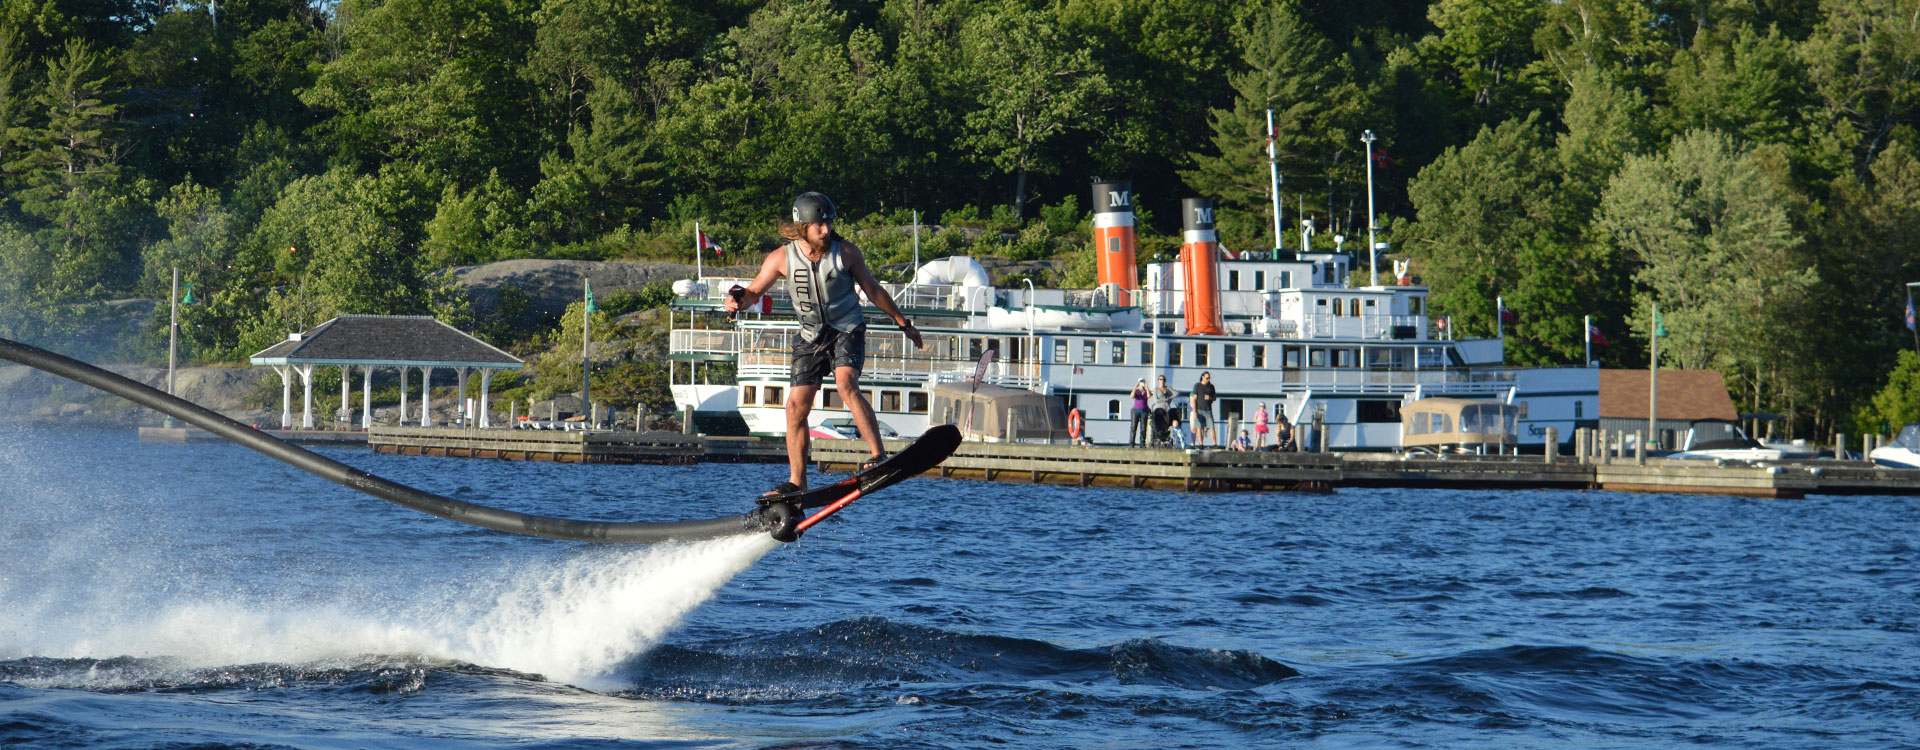 Water ski show, Muskoka Wharf, Lake Muskoka in front of Steamship